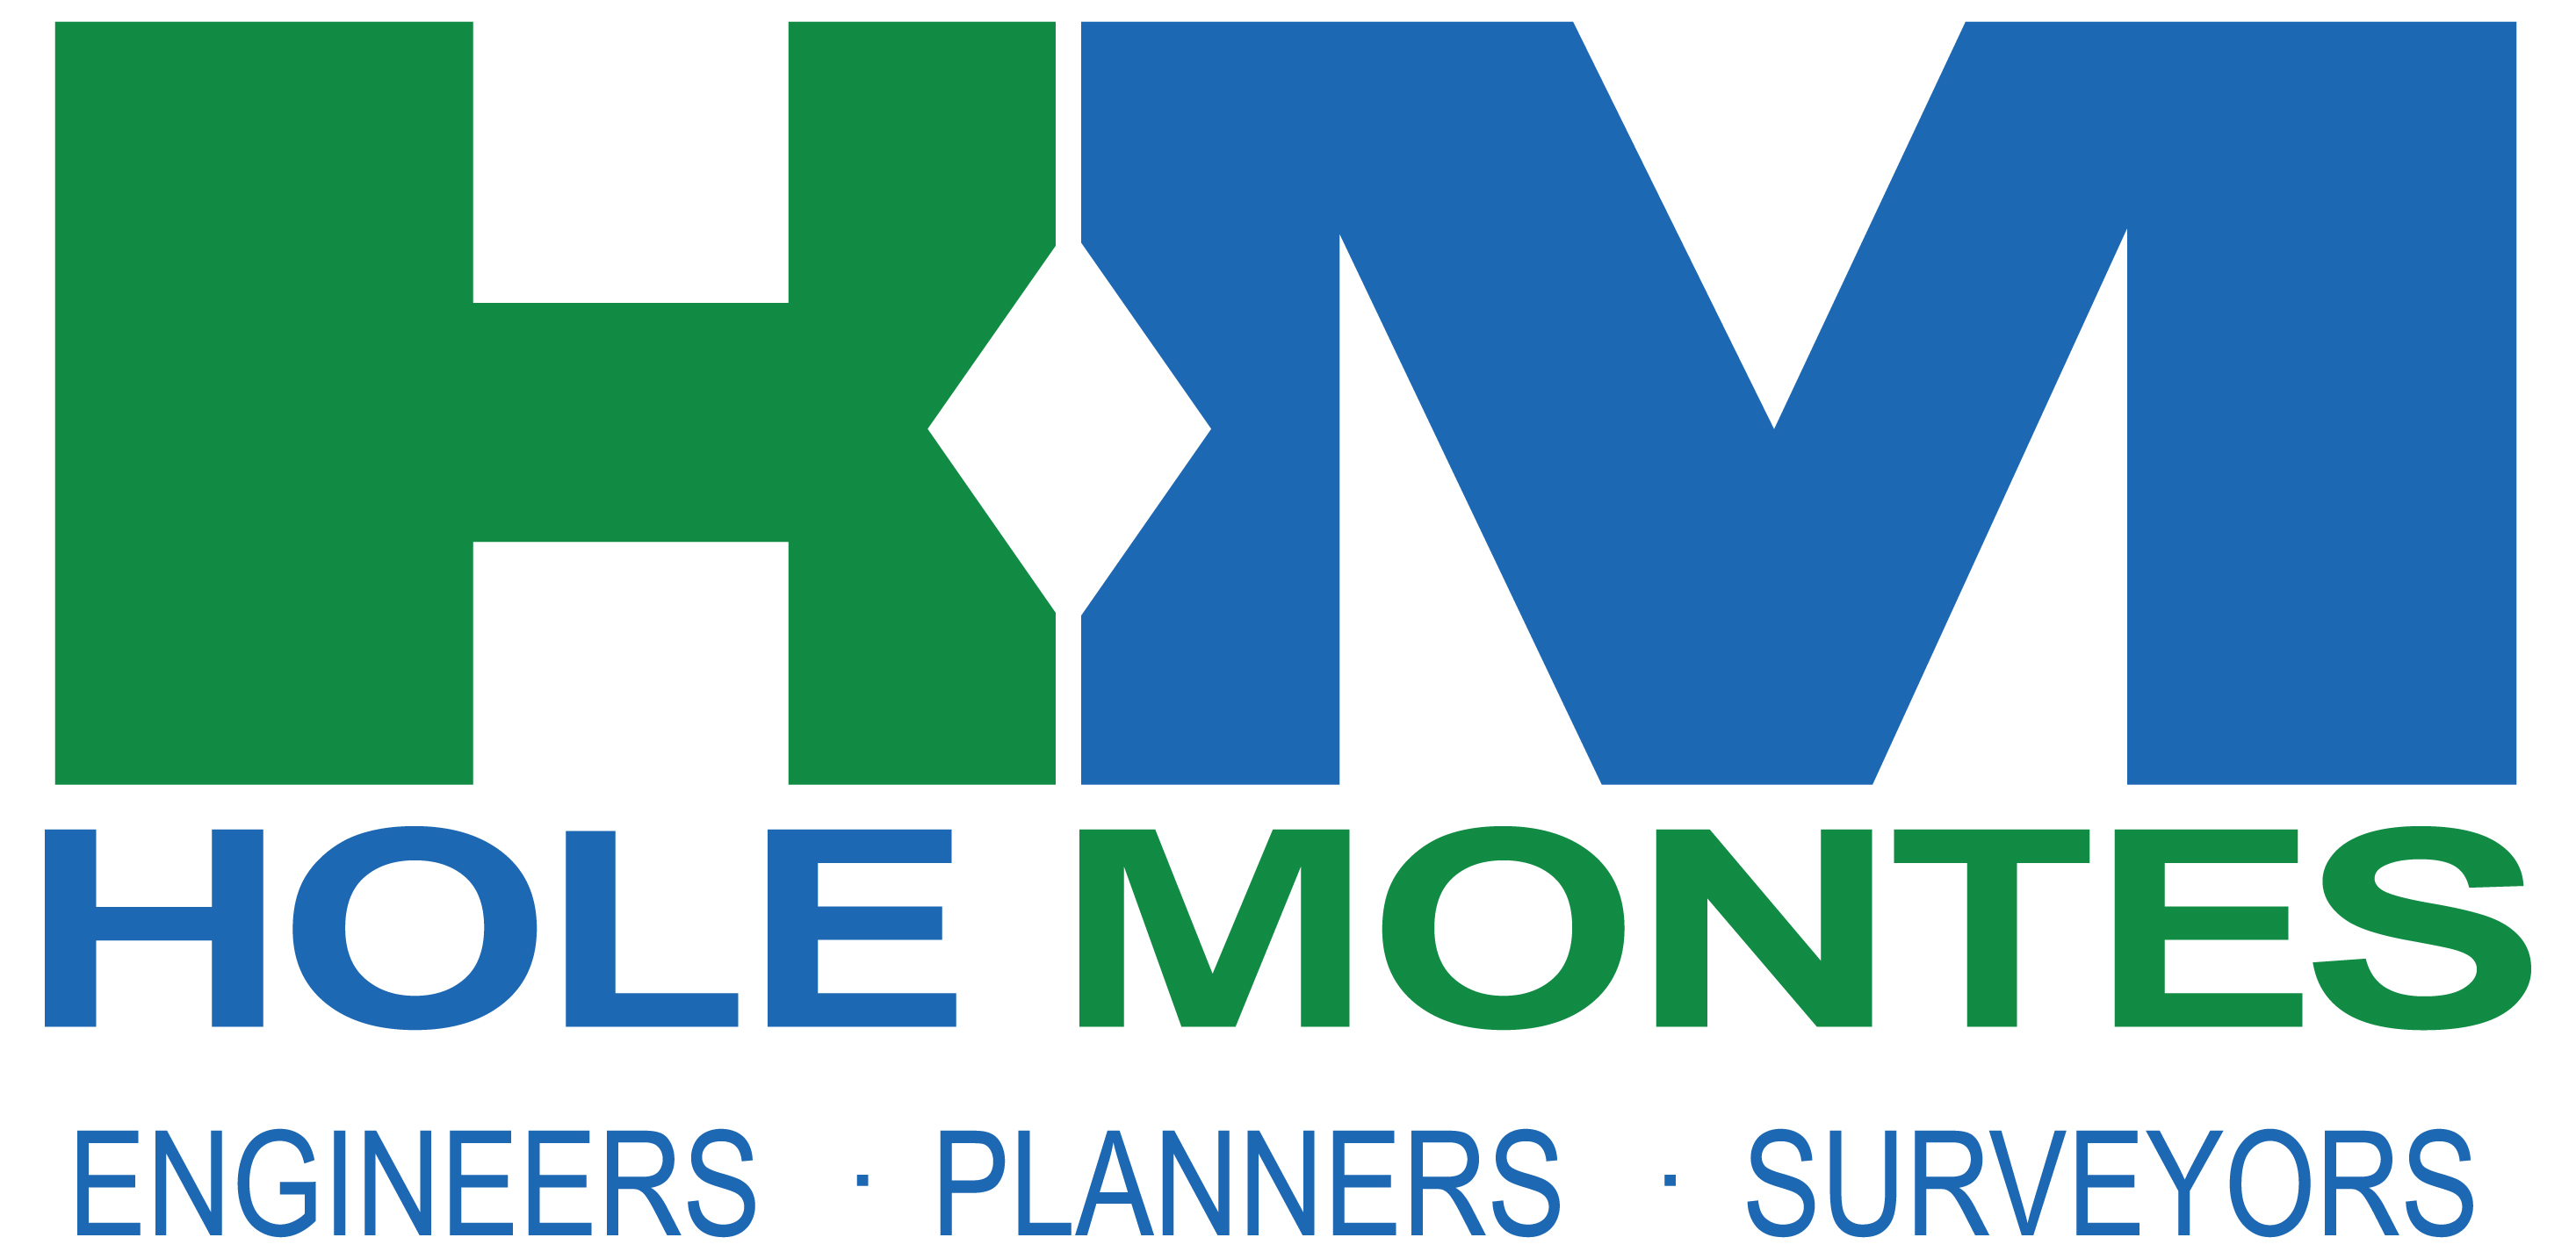 Hole Montes Logo with External Link to company website